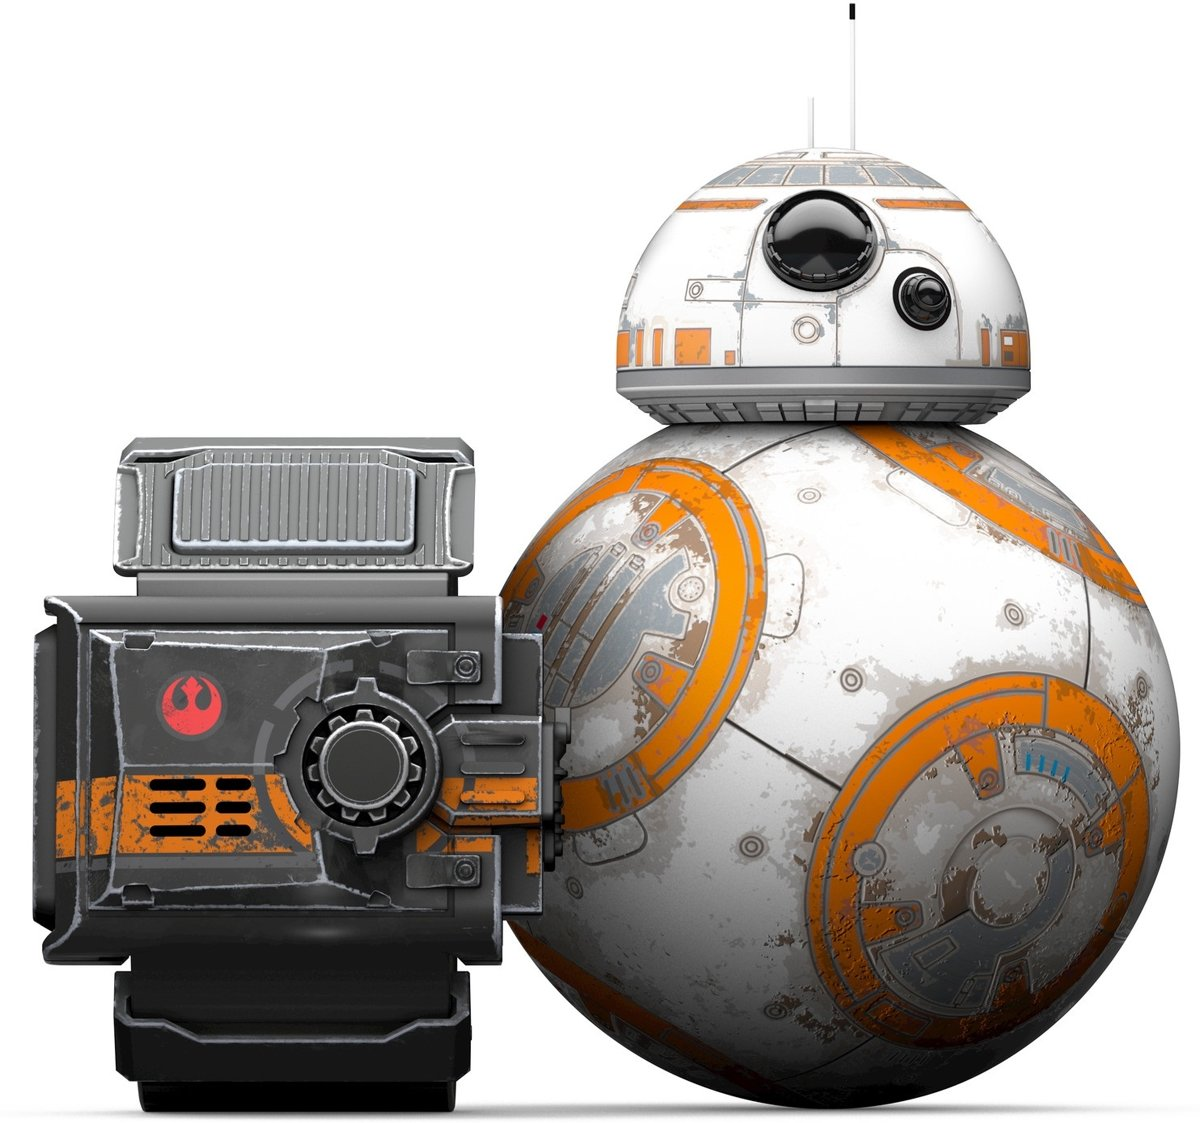 Sphero Star Wars Special Edition Battle-Worn BB-8 with Force Band Robot voor €99